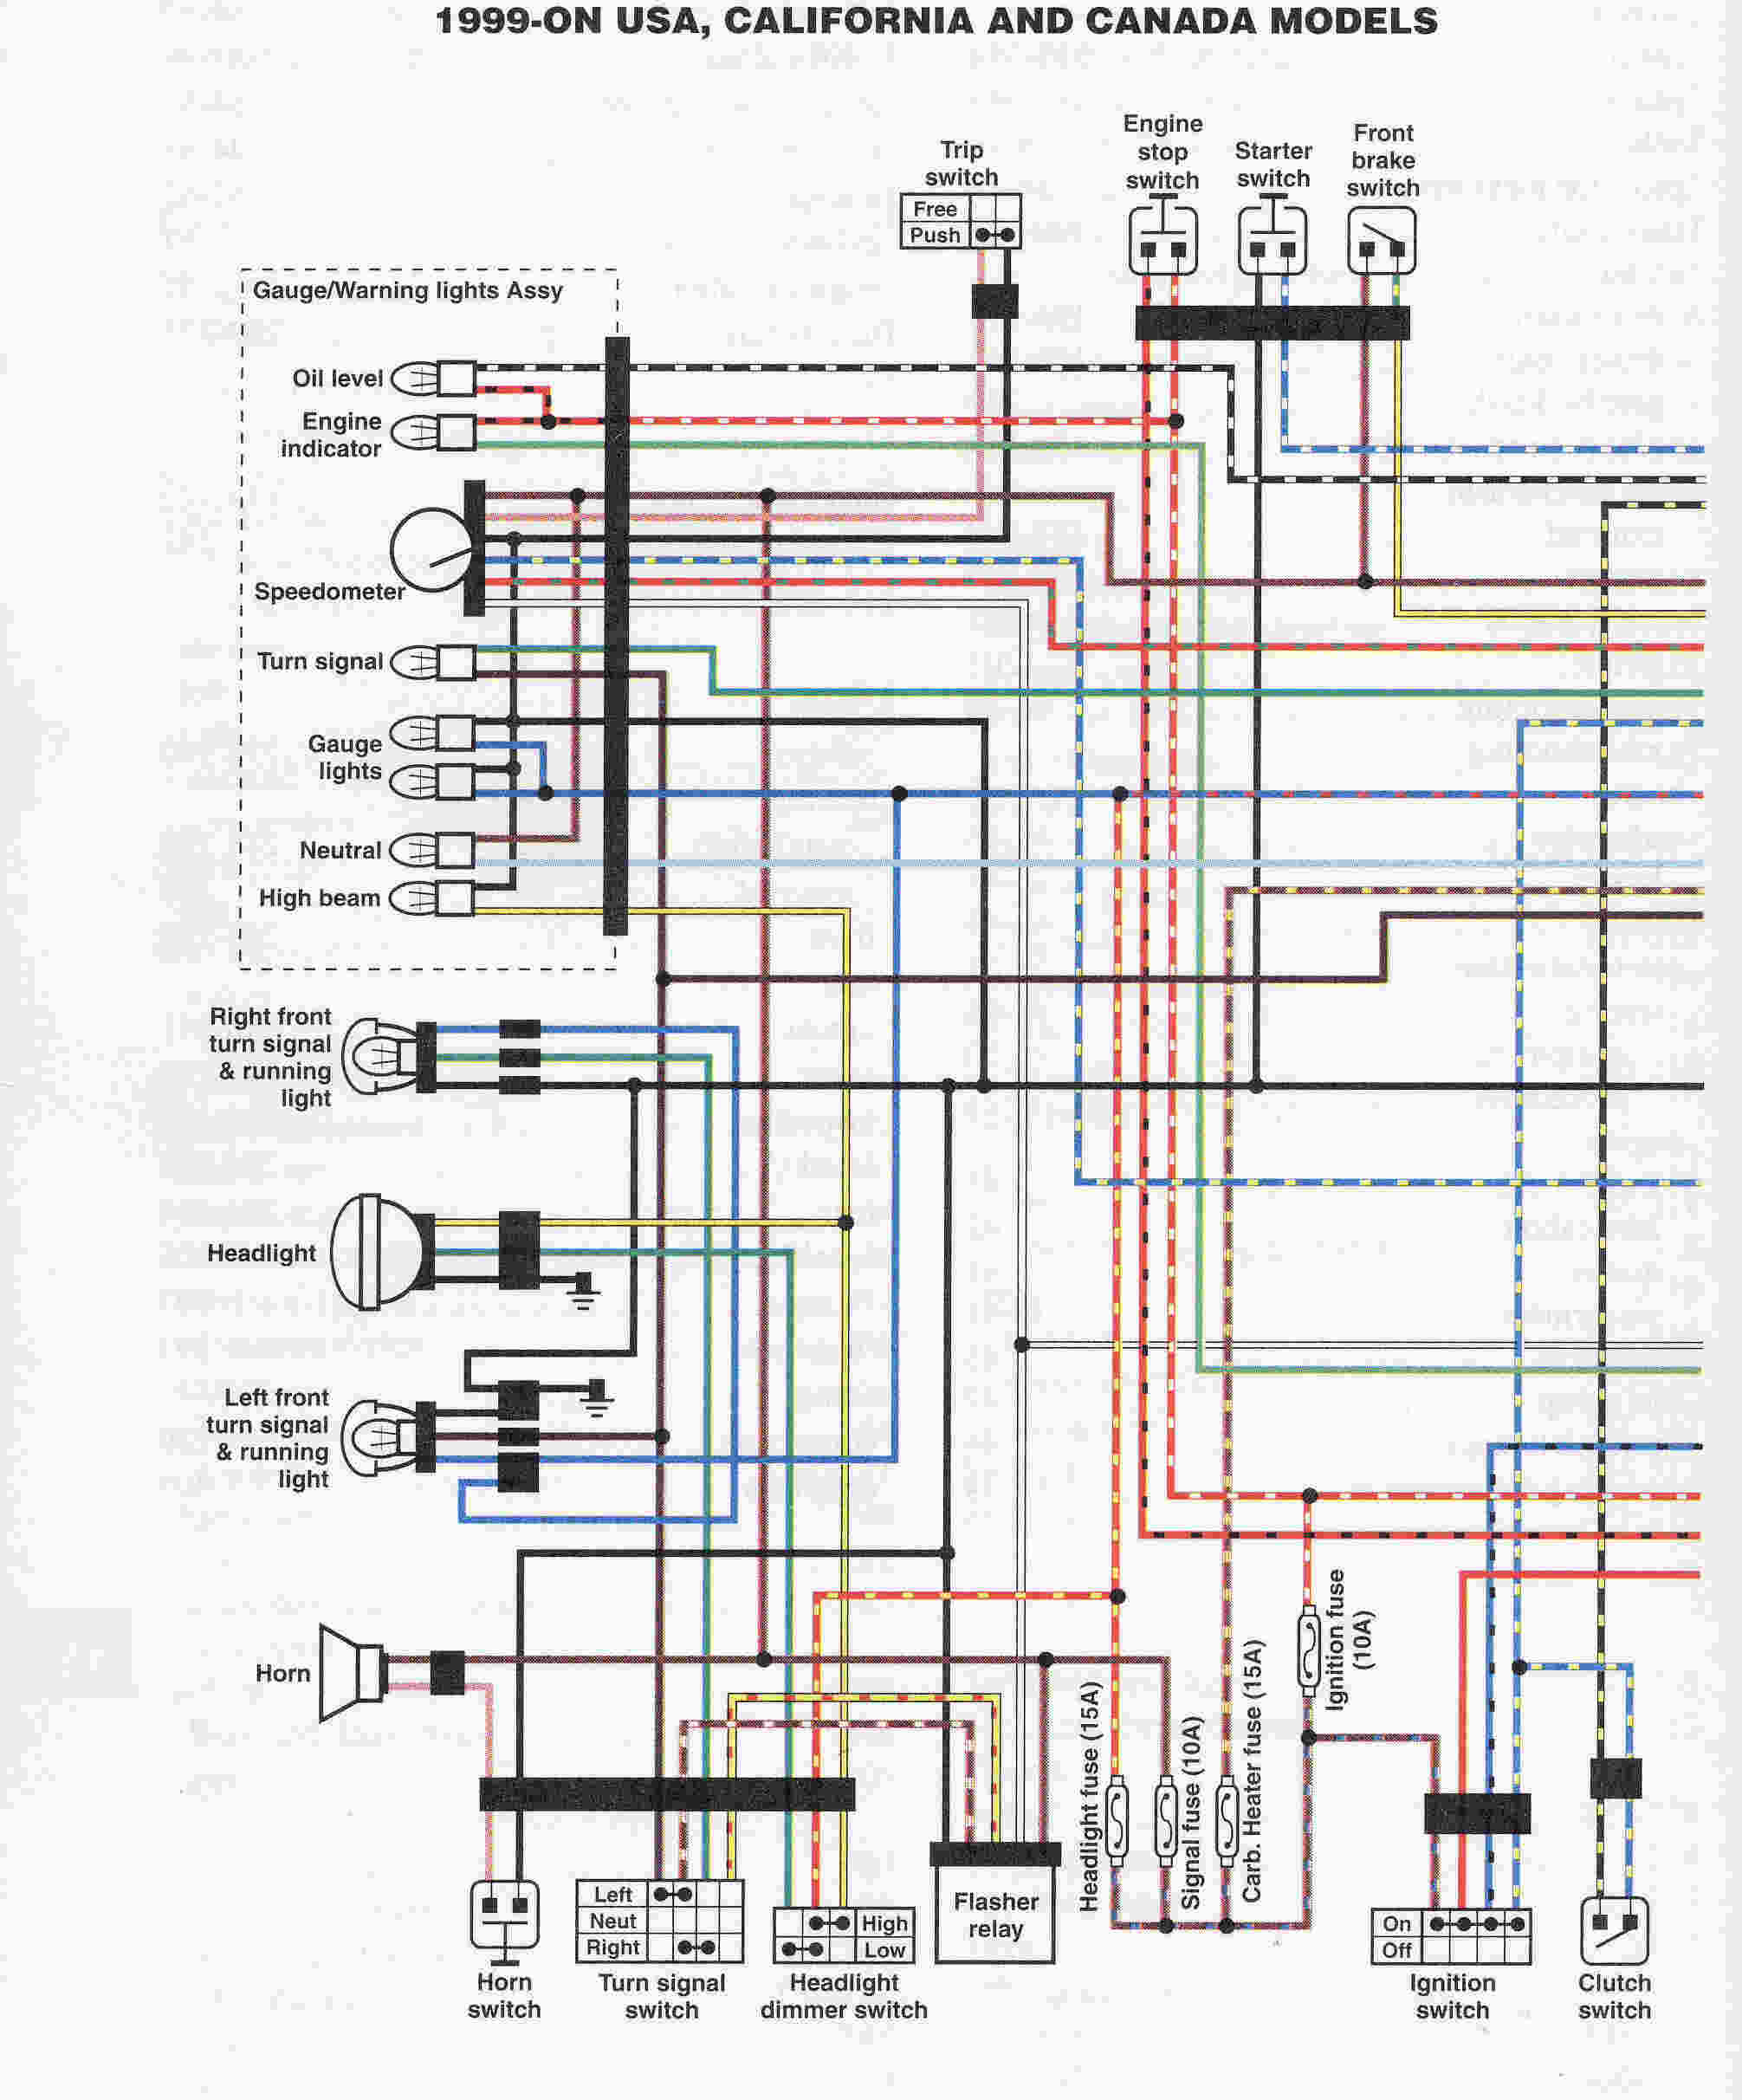 virago signal wiring diagram wiring diagrams and schematics café racer wiring bikebrewers